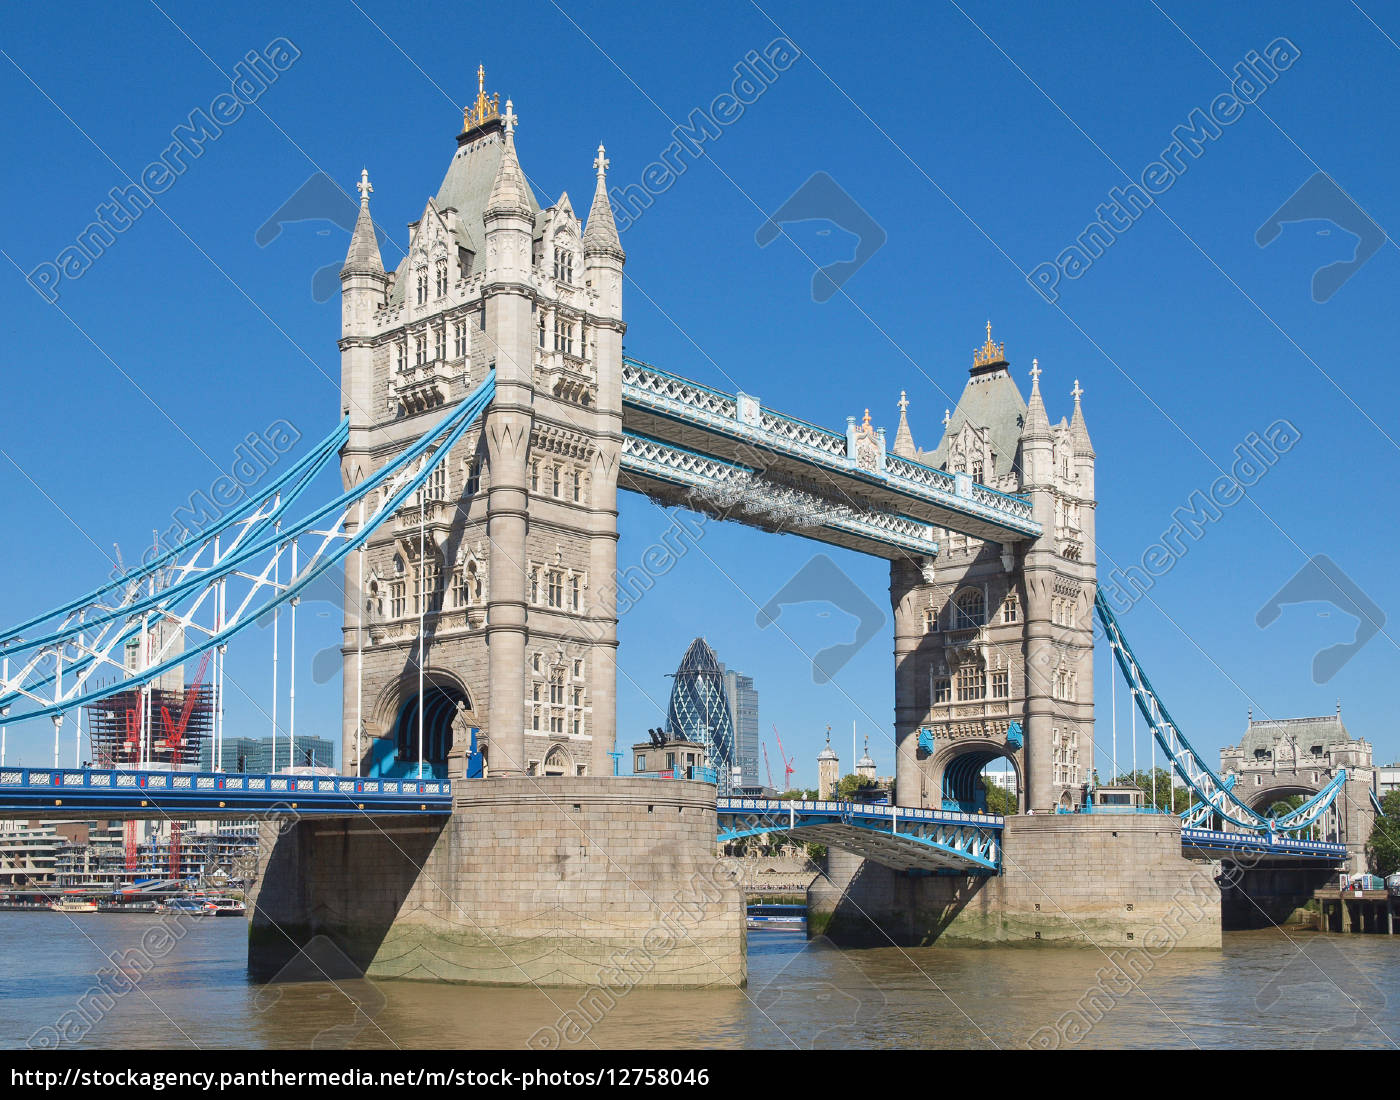 tower, bridge, london - 12758046